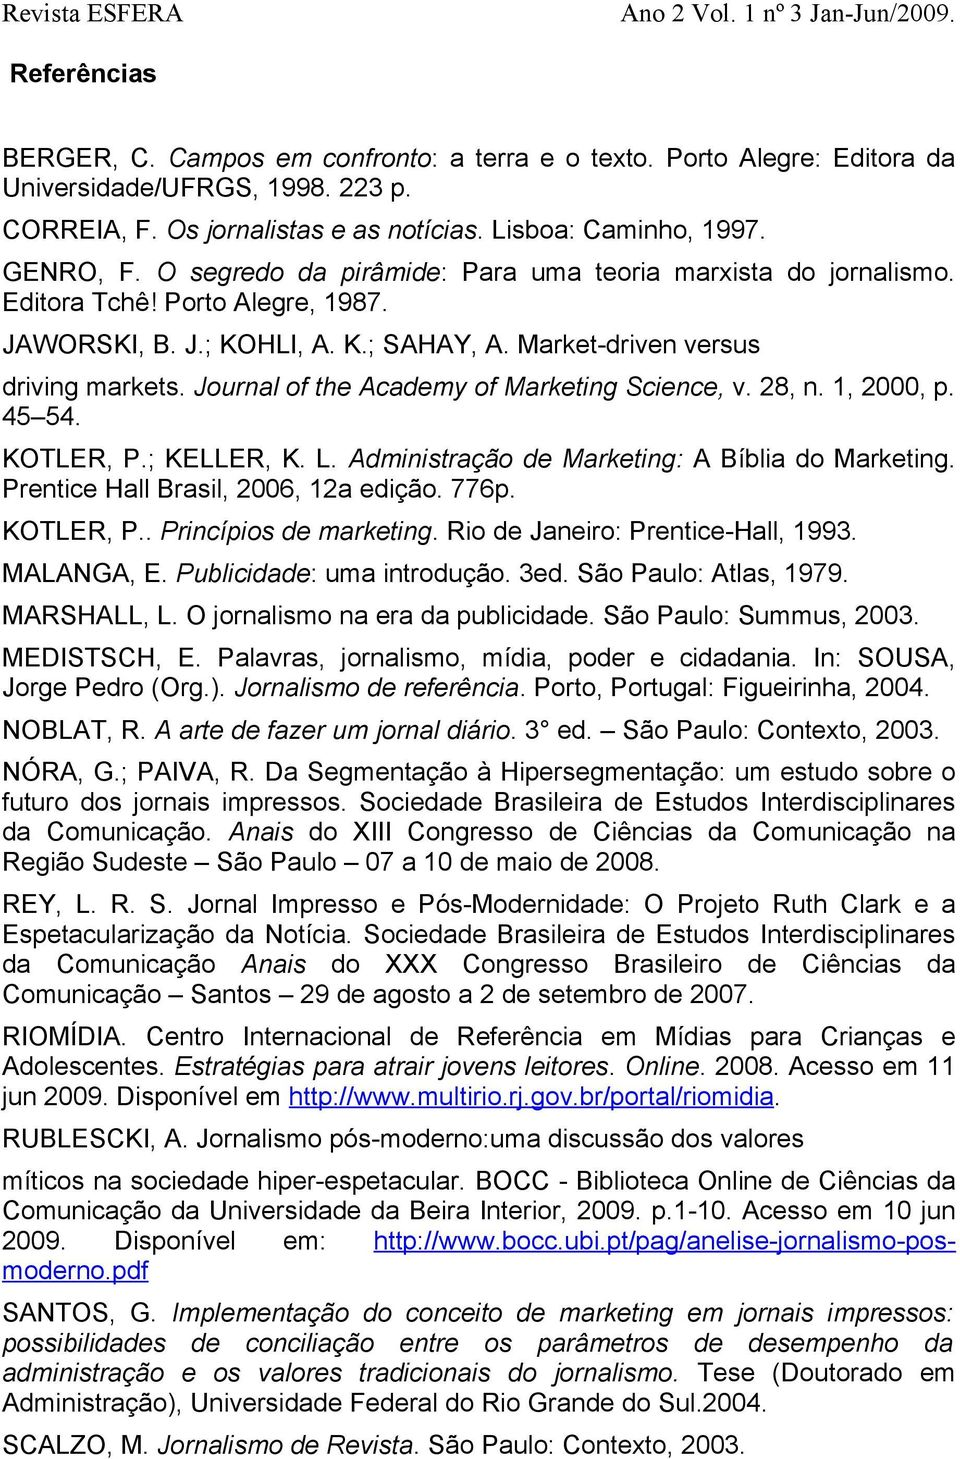 Journal of the Academy of Marketing Science, v. 28, n. 1, 2000, p. 45 54. KOTLER, P.; KELLER, K. L. Administração de Marketing: A Bíblia do Marketing. Prentice Hall Brasil, 2006, 12a edição. 776p.